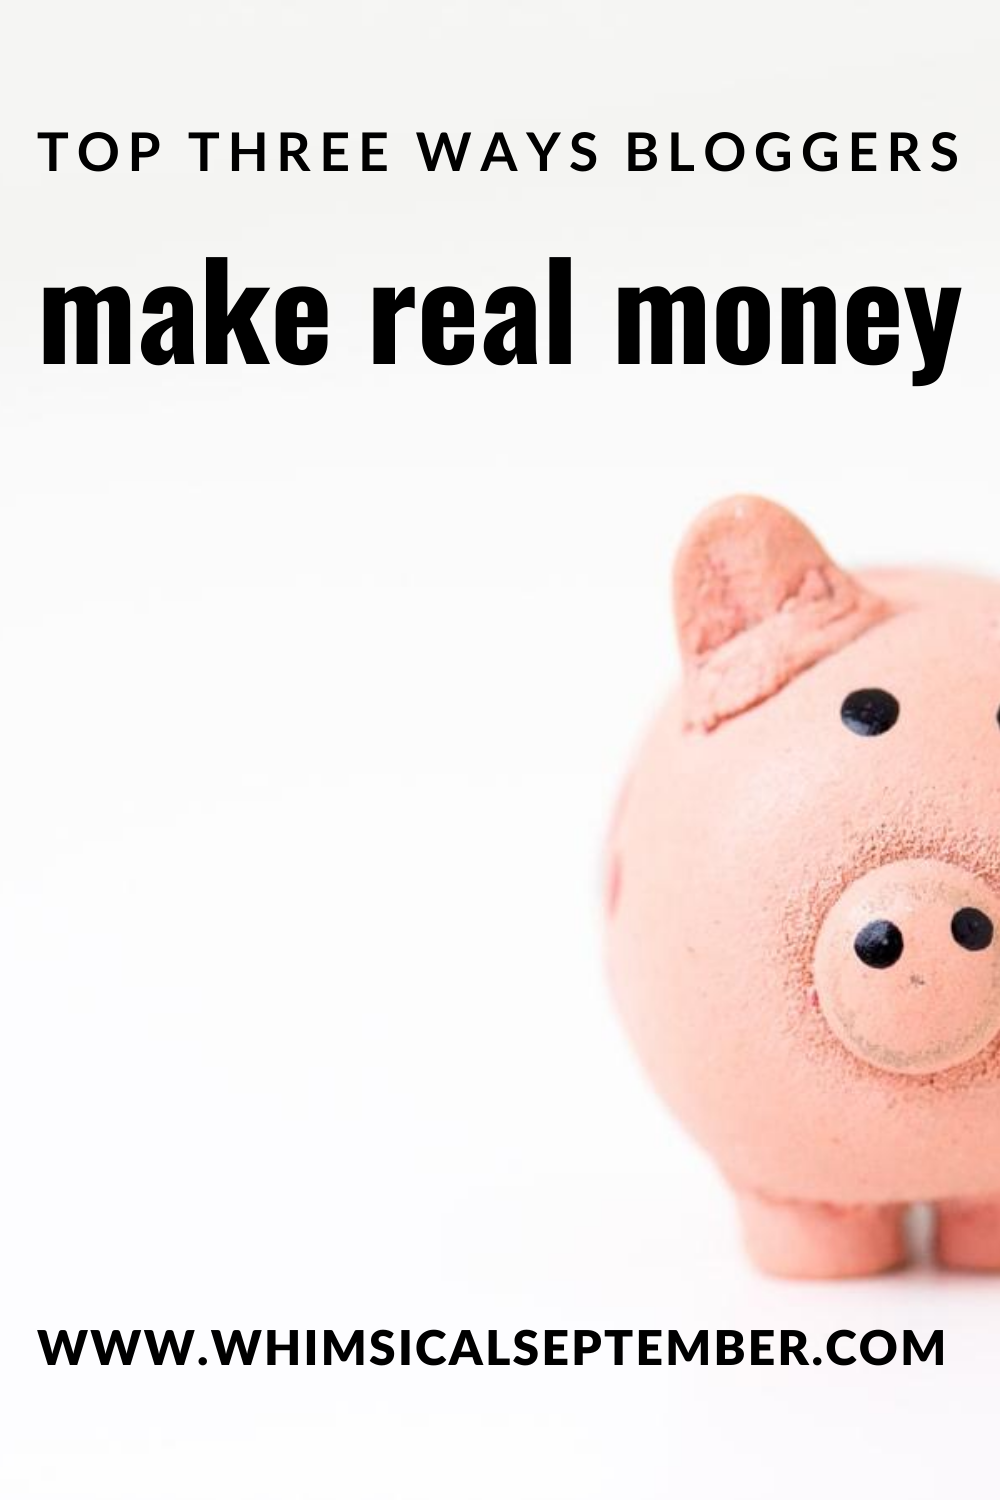 This article shares how to make real money from your website. No selling courses or physical products. No monetizing social media. This article tells exactly how bloggers make legetimate money from their websites. Read more on whimsicalsepember.com